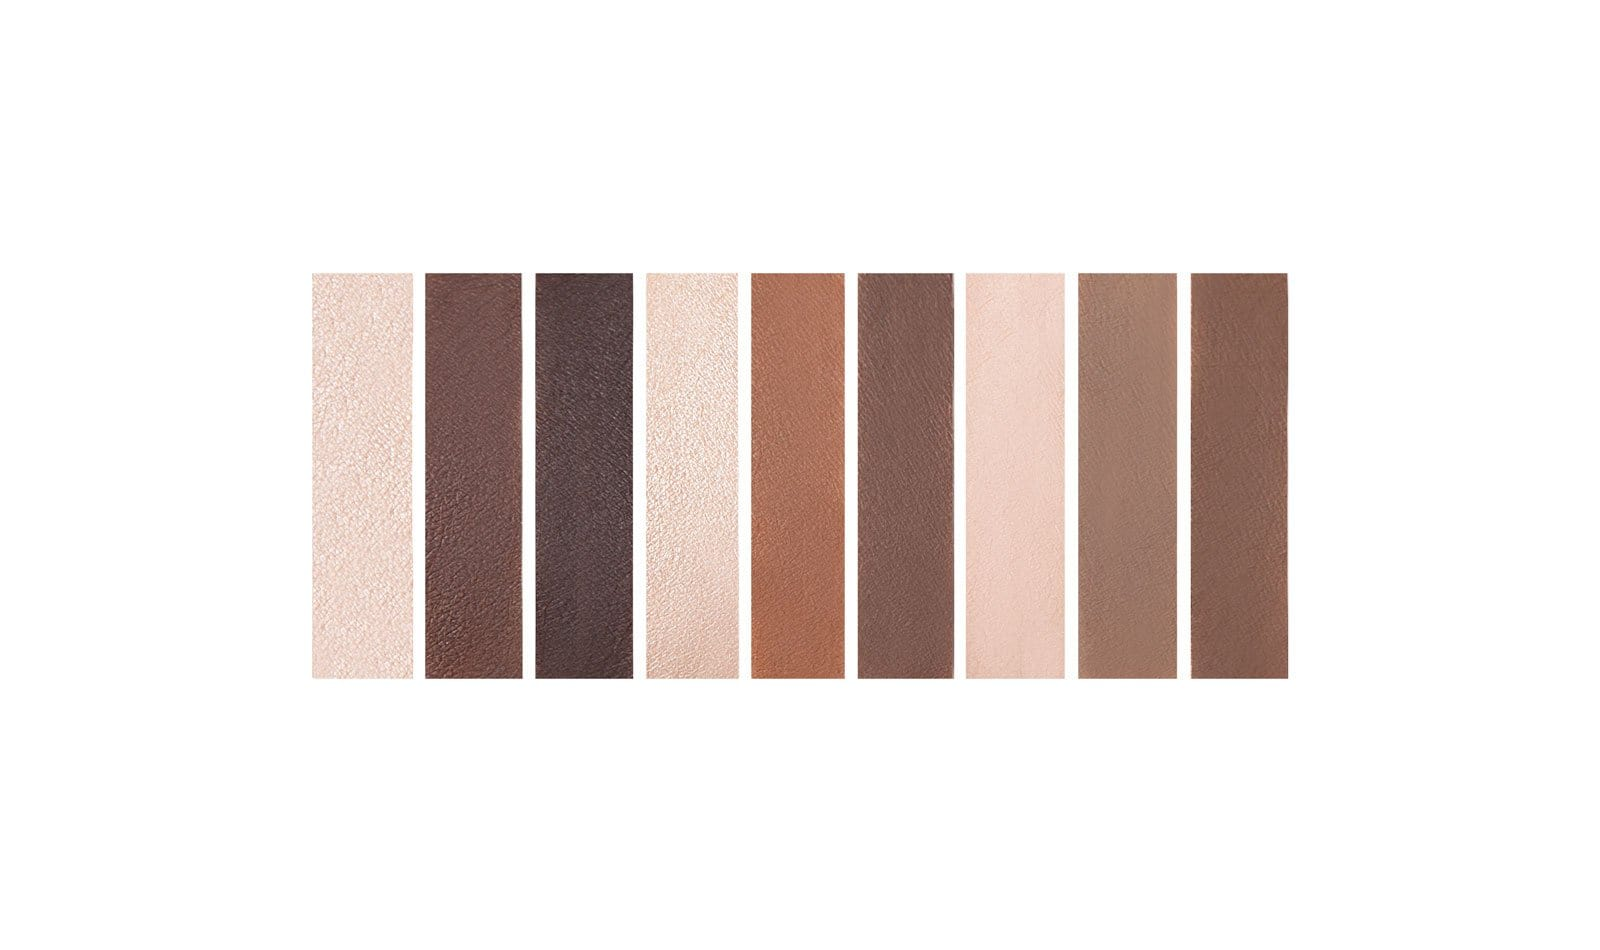 BROW SPECTRUM (PALETTE)